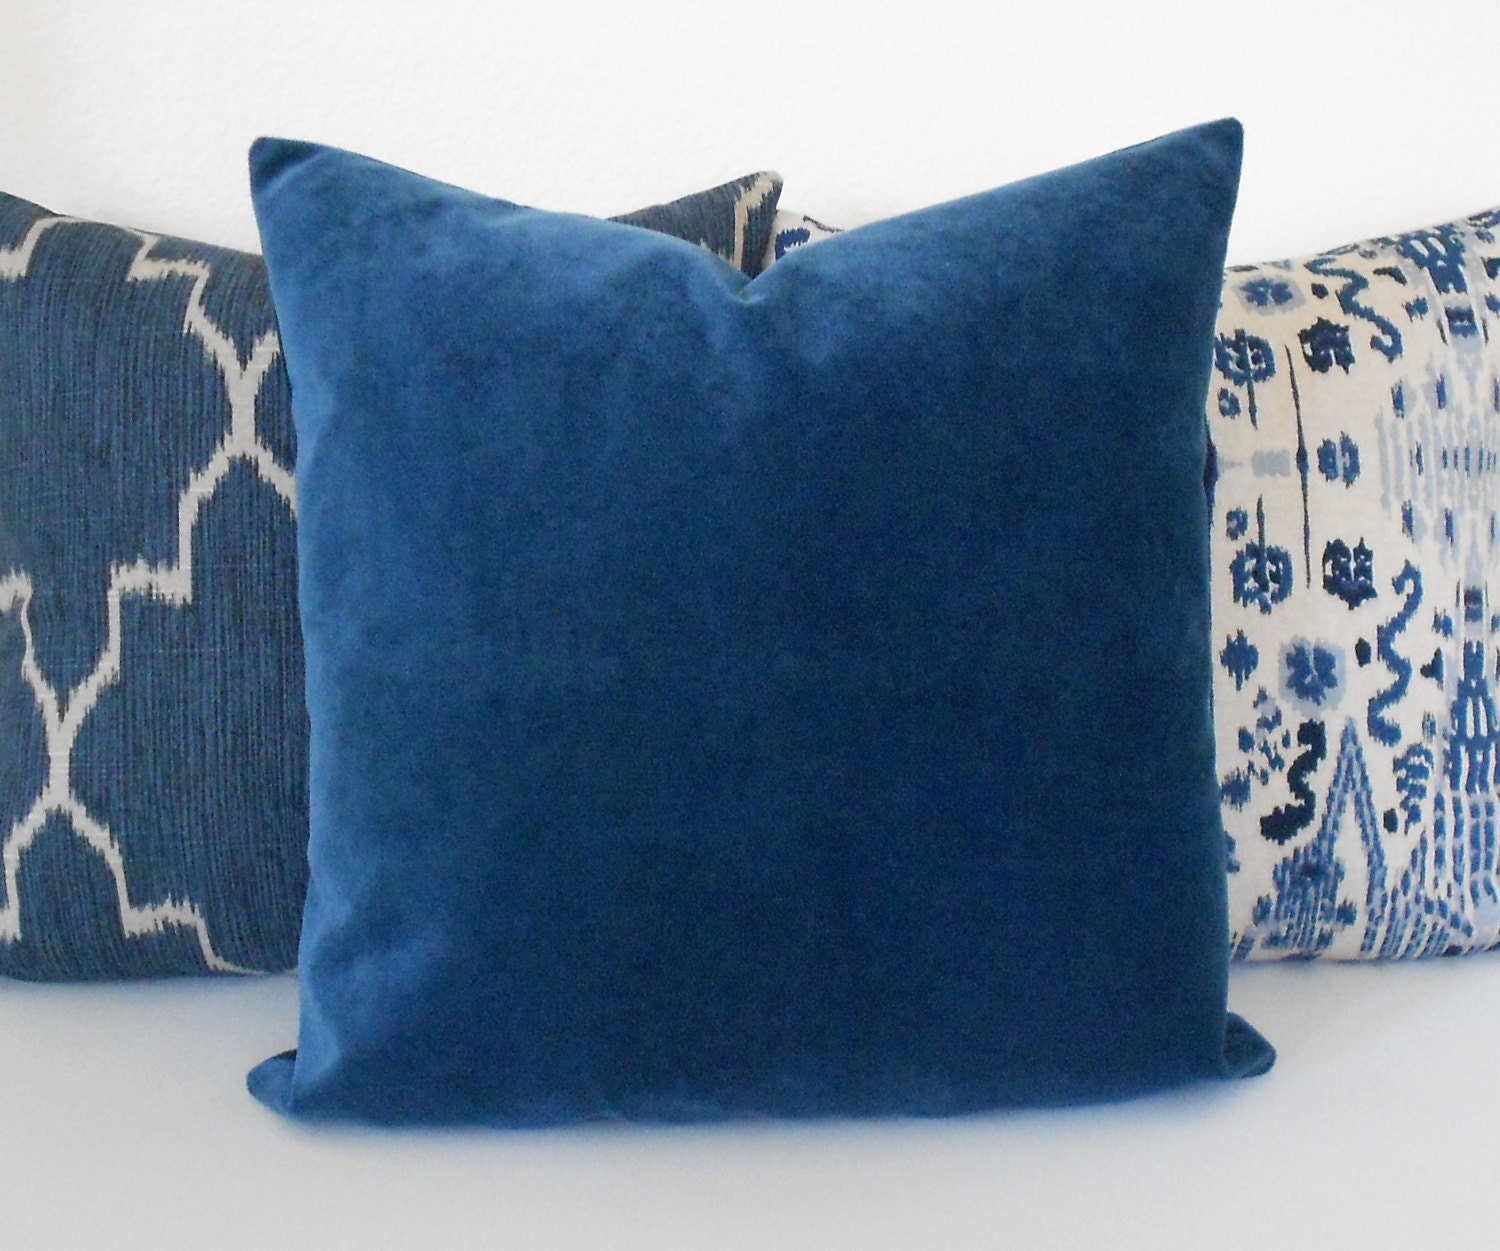 Indigo Blue velvet decorative pillow cover accent pillow